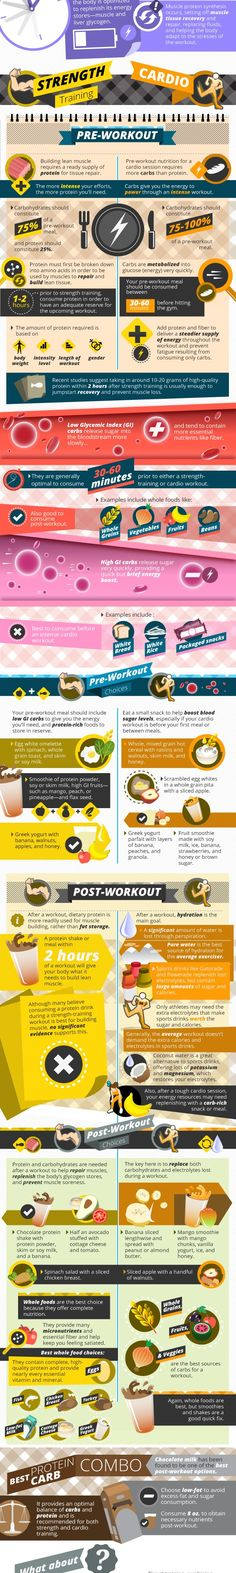 images Post-workout snack and meal suggestions